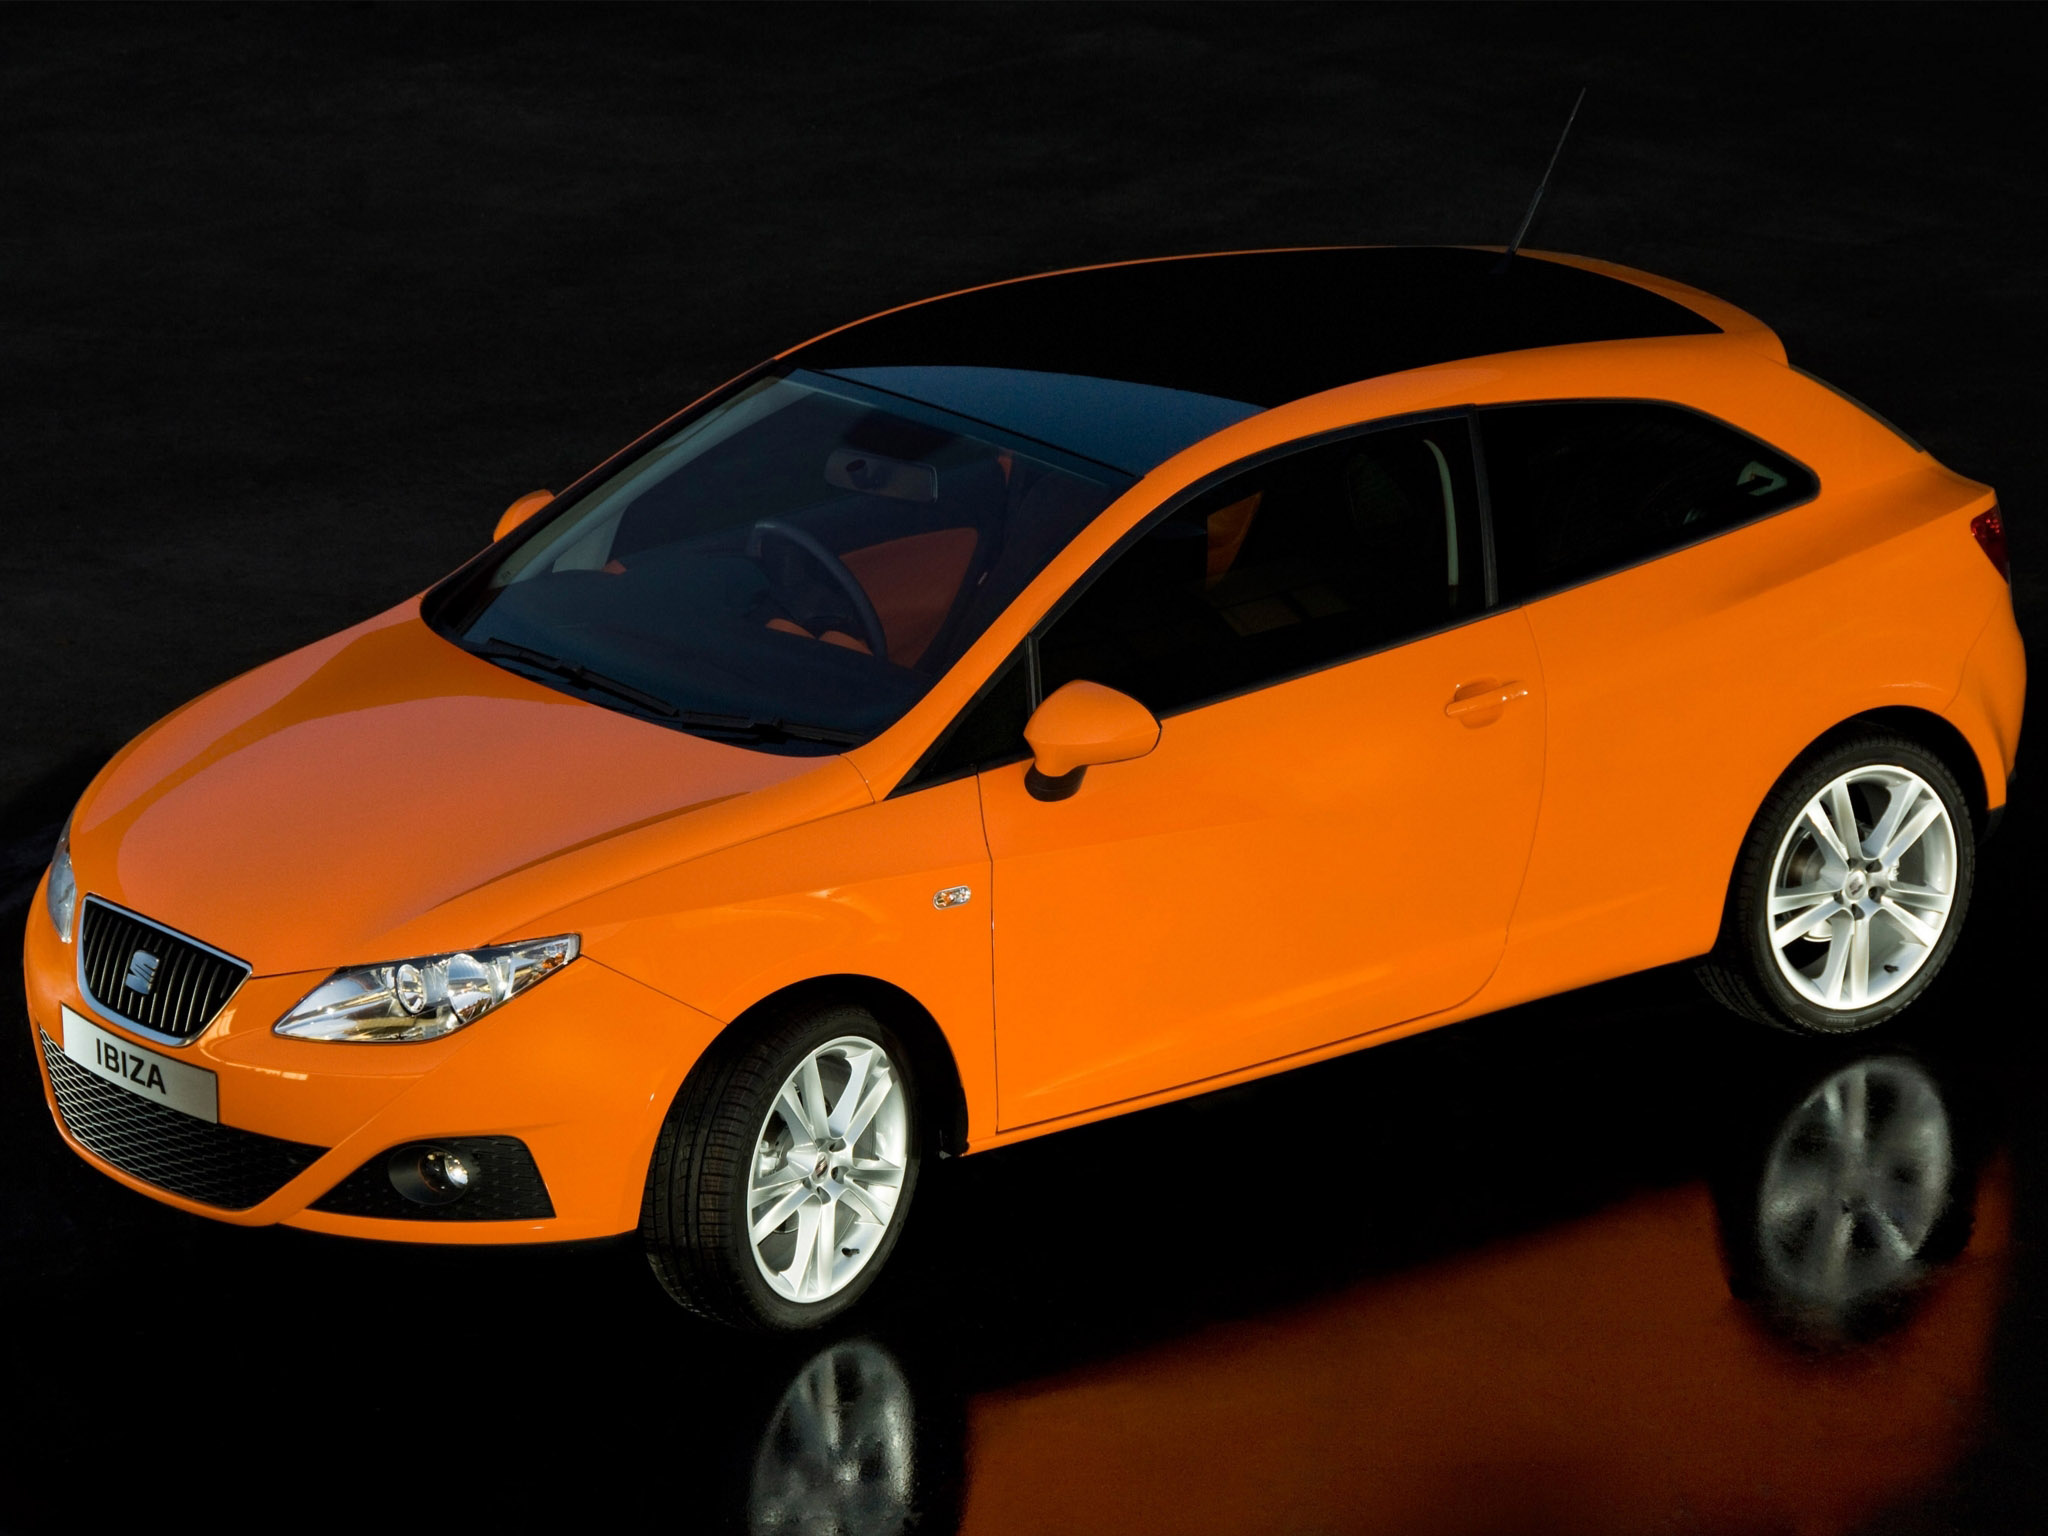 seat ibiza sc sport coupe uk 2008 seat ibiza sc sport coupe uk 2008 photo 05 car in pictures. Black Bedroom Furniture Sets. Home Design Ideas